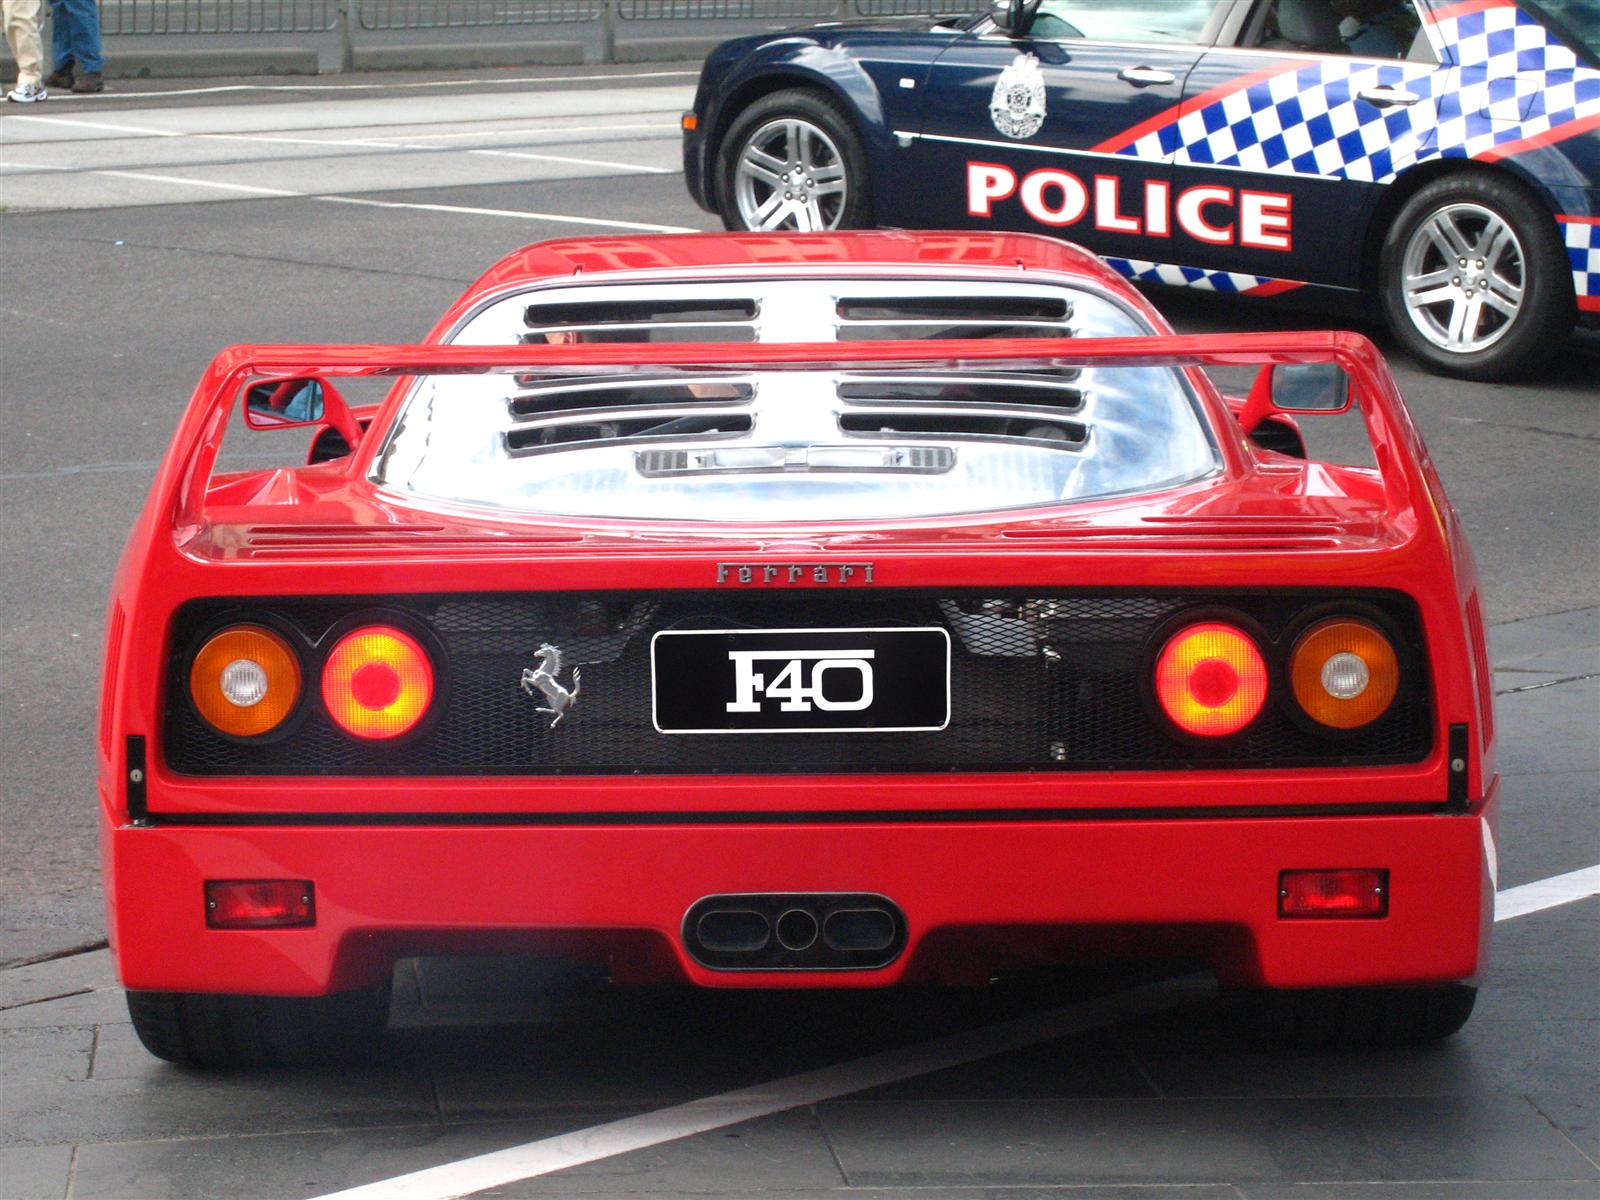 Ferrari F40 - rear and police (Crown Casino, Melbourne, Australia, 3 March 2007).jpg